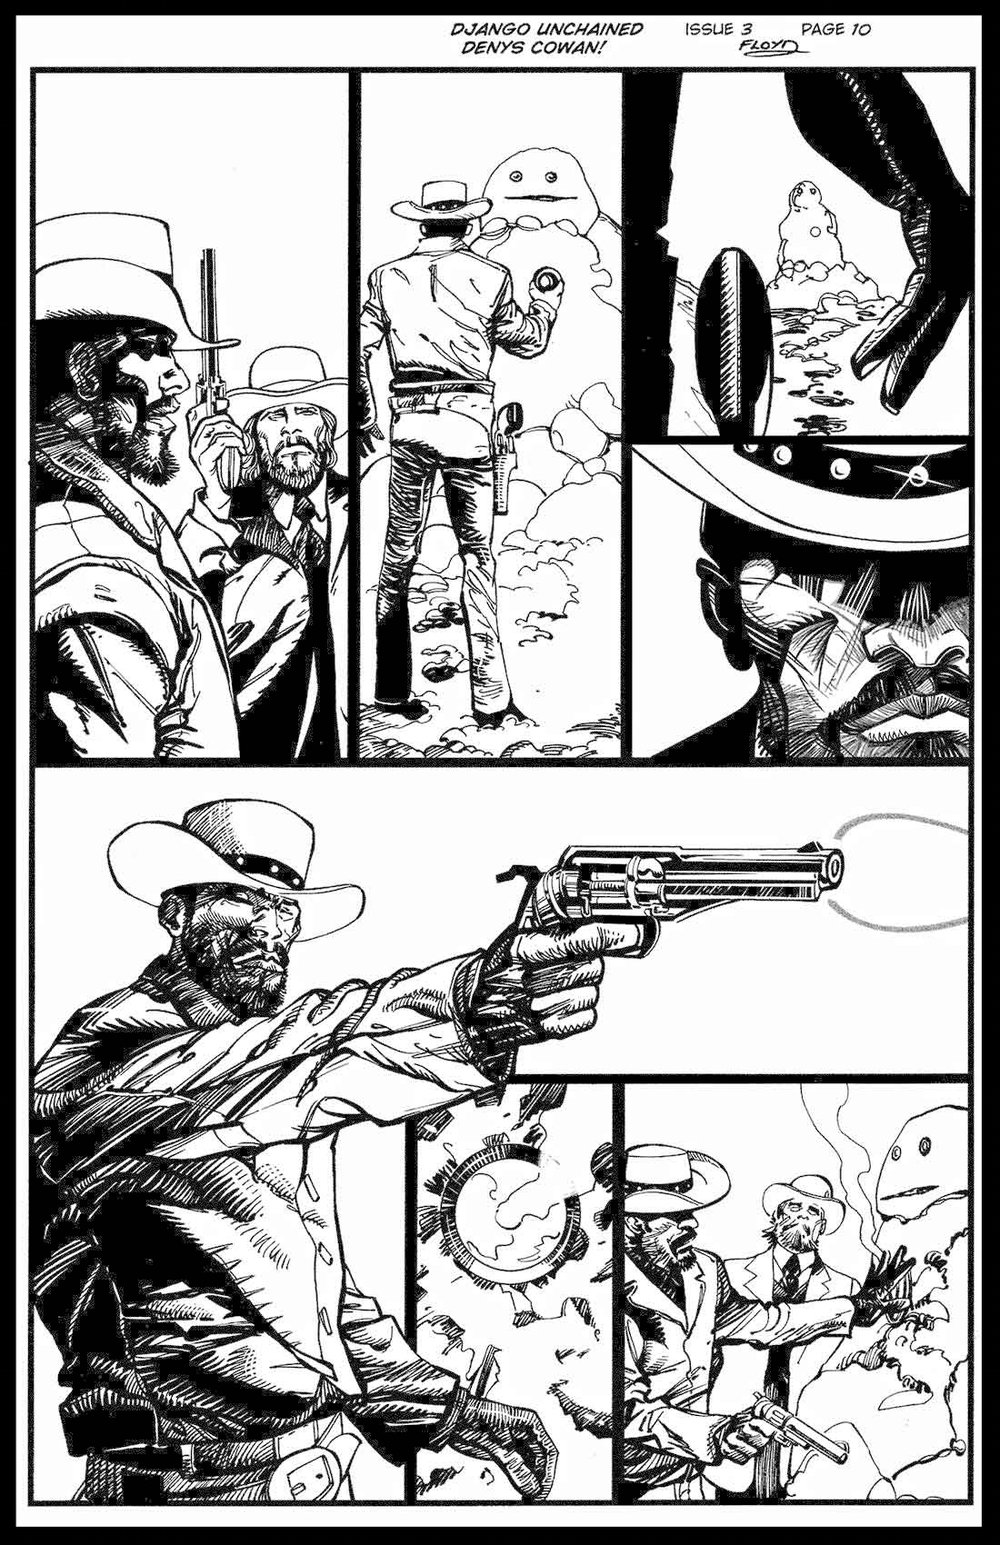 Django Unchained #3 - Page 10 - Pencils & Inks